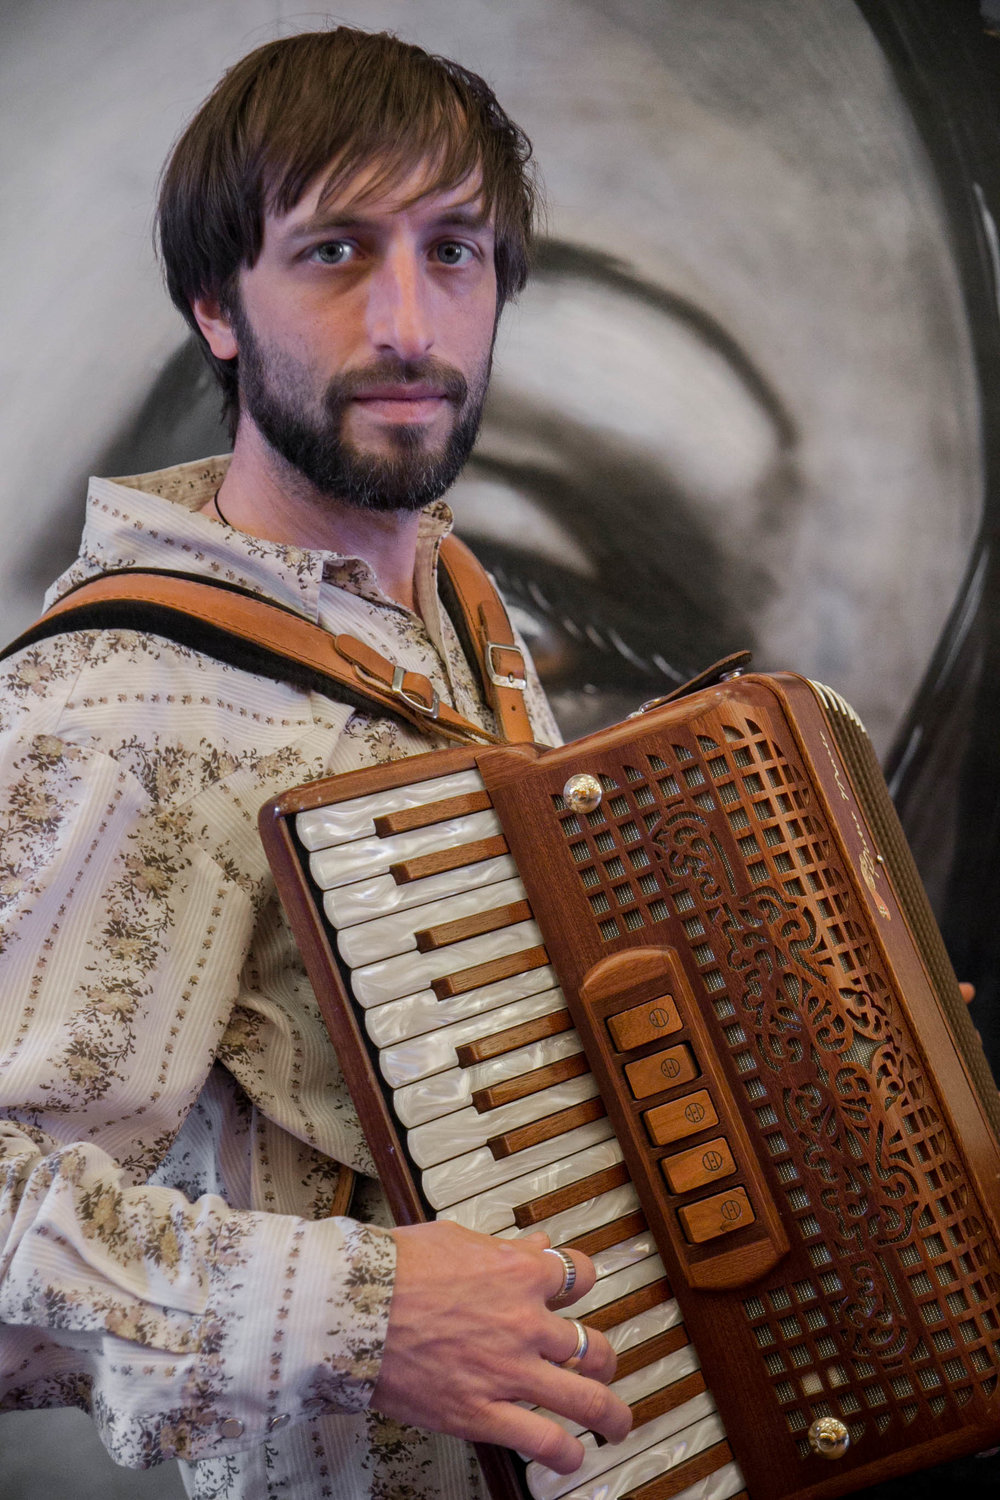 Matty Metcalfe - Matty Metcalfe is a virtuoso accordionist and multi-instrumentalist whose musical range includes Irish, bluegrass, Klezmer, classical, jazz, pop, and zydeco styles. He is also in demand as a session and touring musician, musical director/arranger for theatrical productions, and pedagogue. The diversity of instruments and approaches that he brings to Lua illuminate each song and add color to the prismatic blend of tones in the sonic space the group creates.http://www.mattymetcalfe.com/